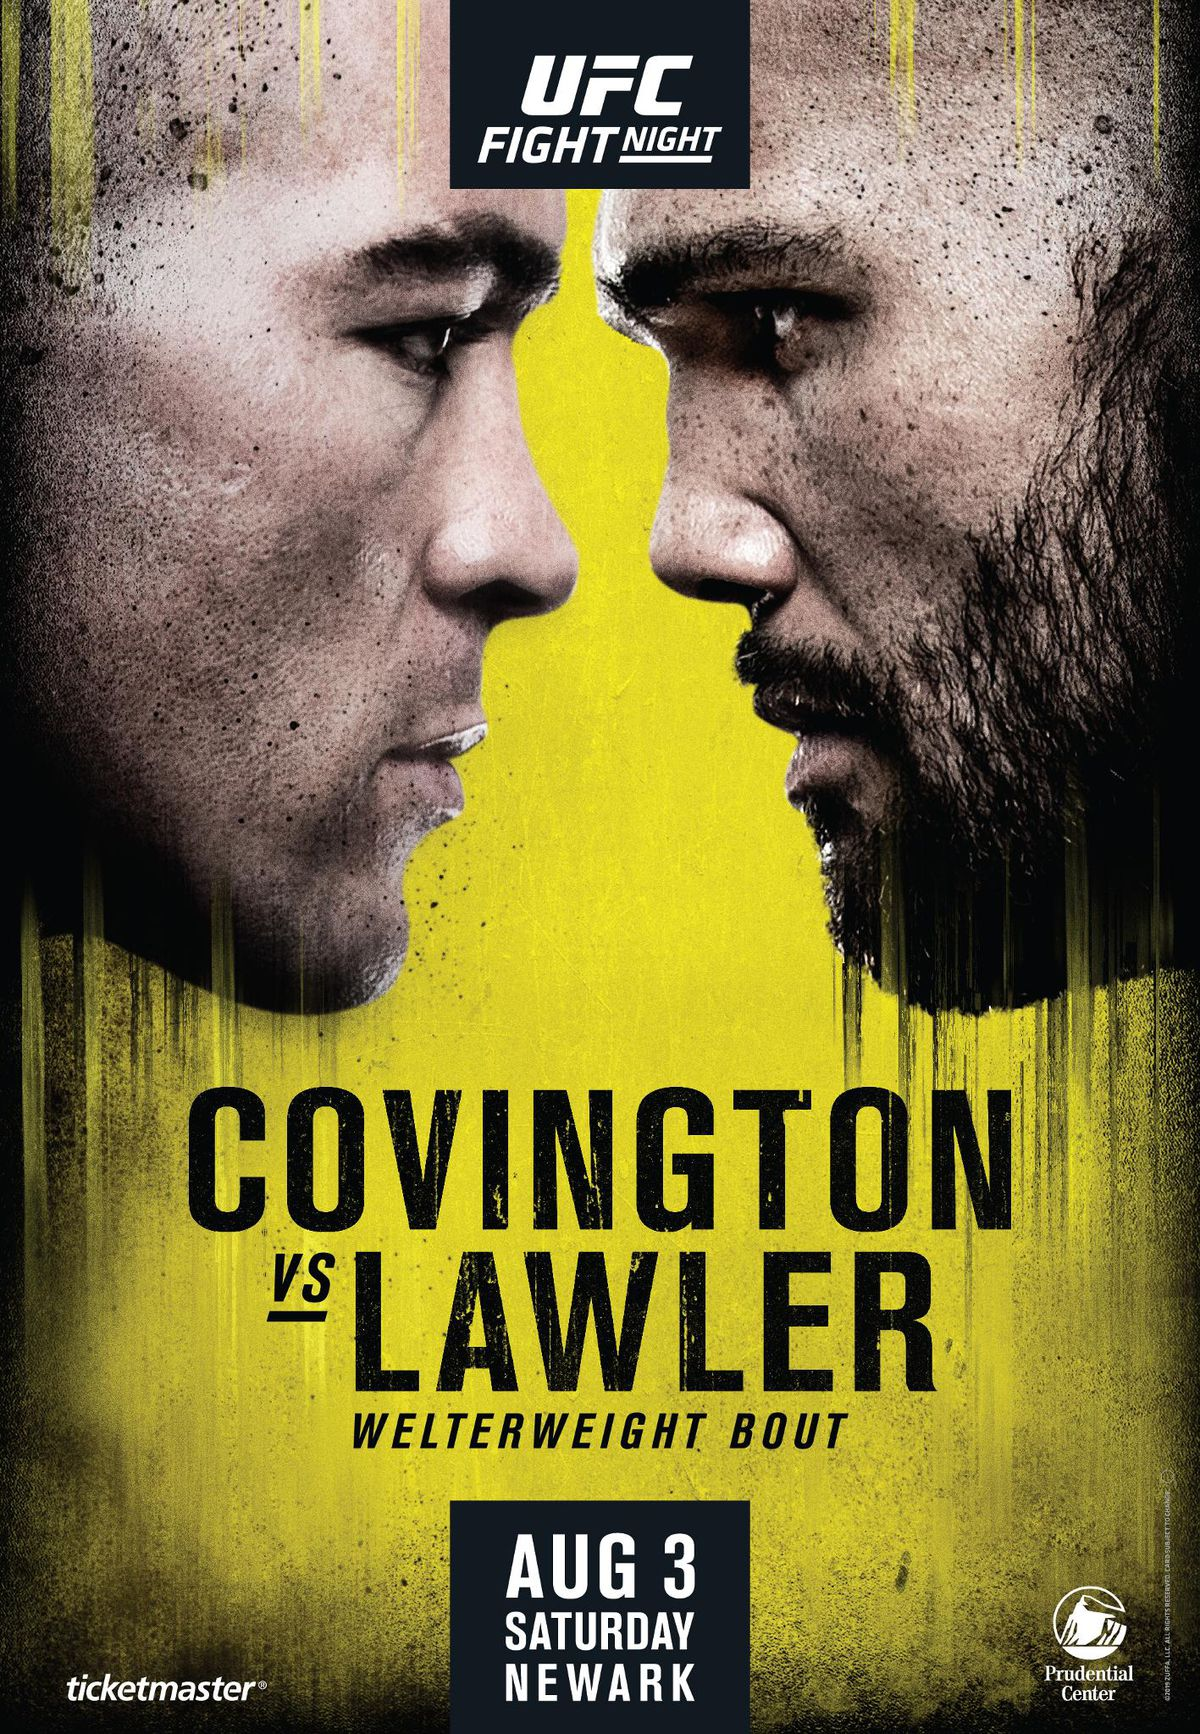 UFC Newark poster drops for 'Covington vs Lawler' on Aug. 3